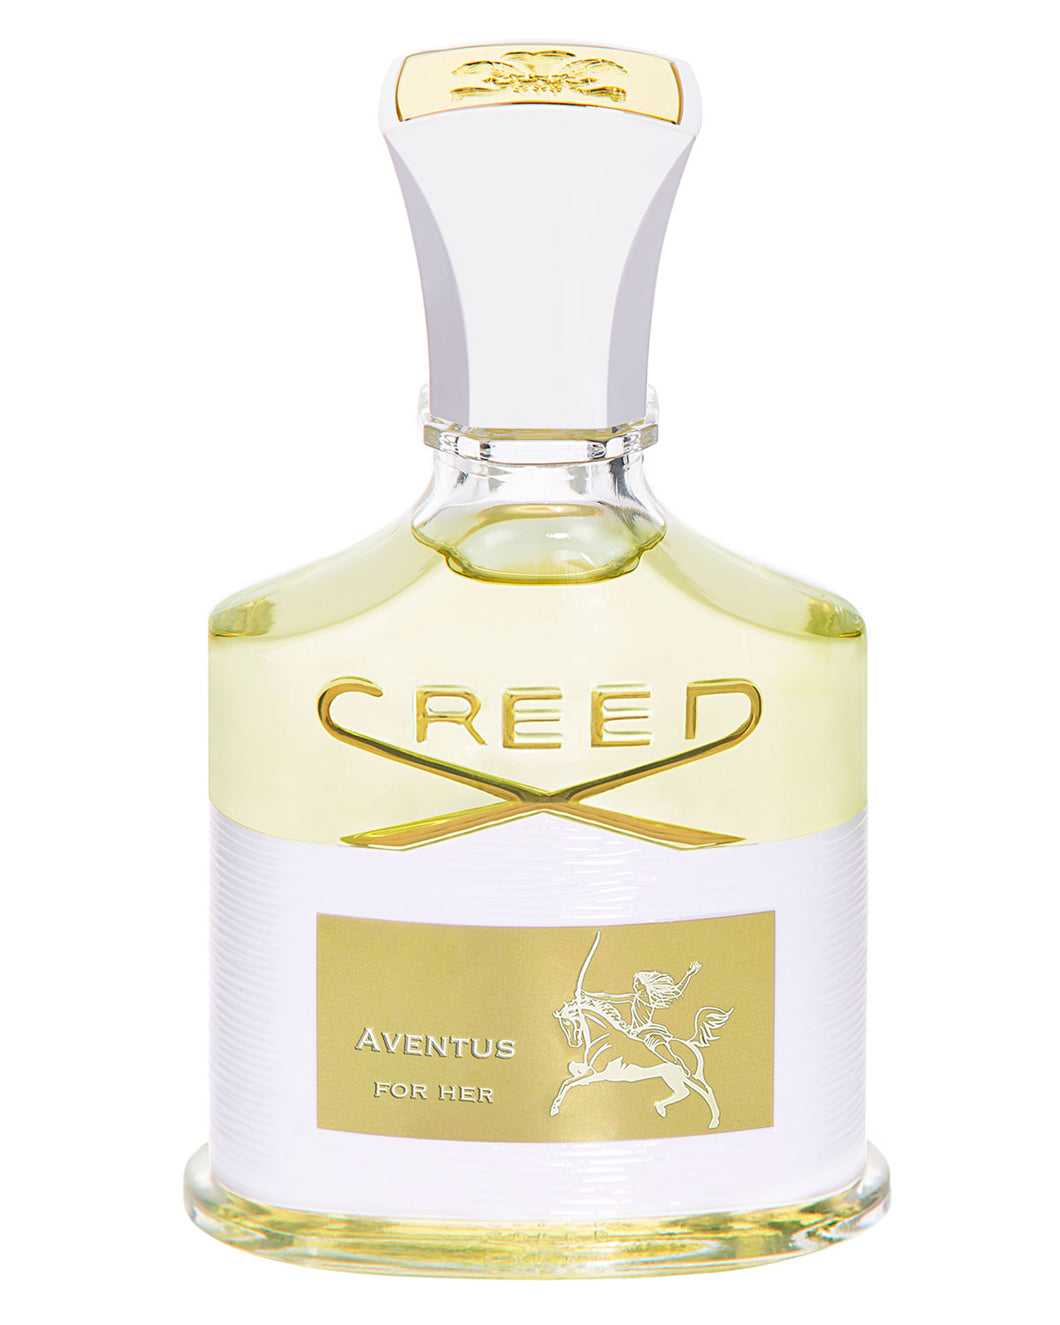 Creed Aventus for Her - Liquid & Scent